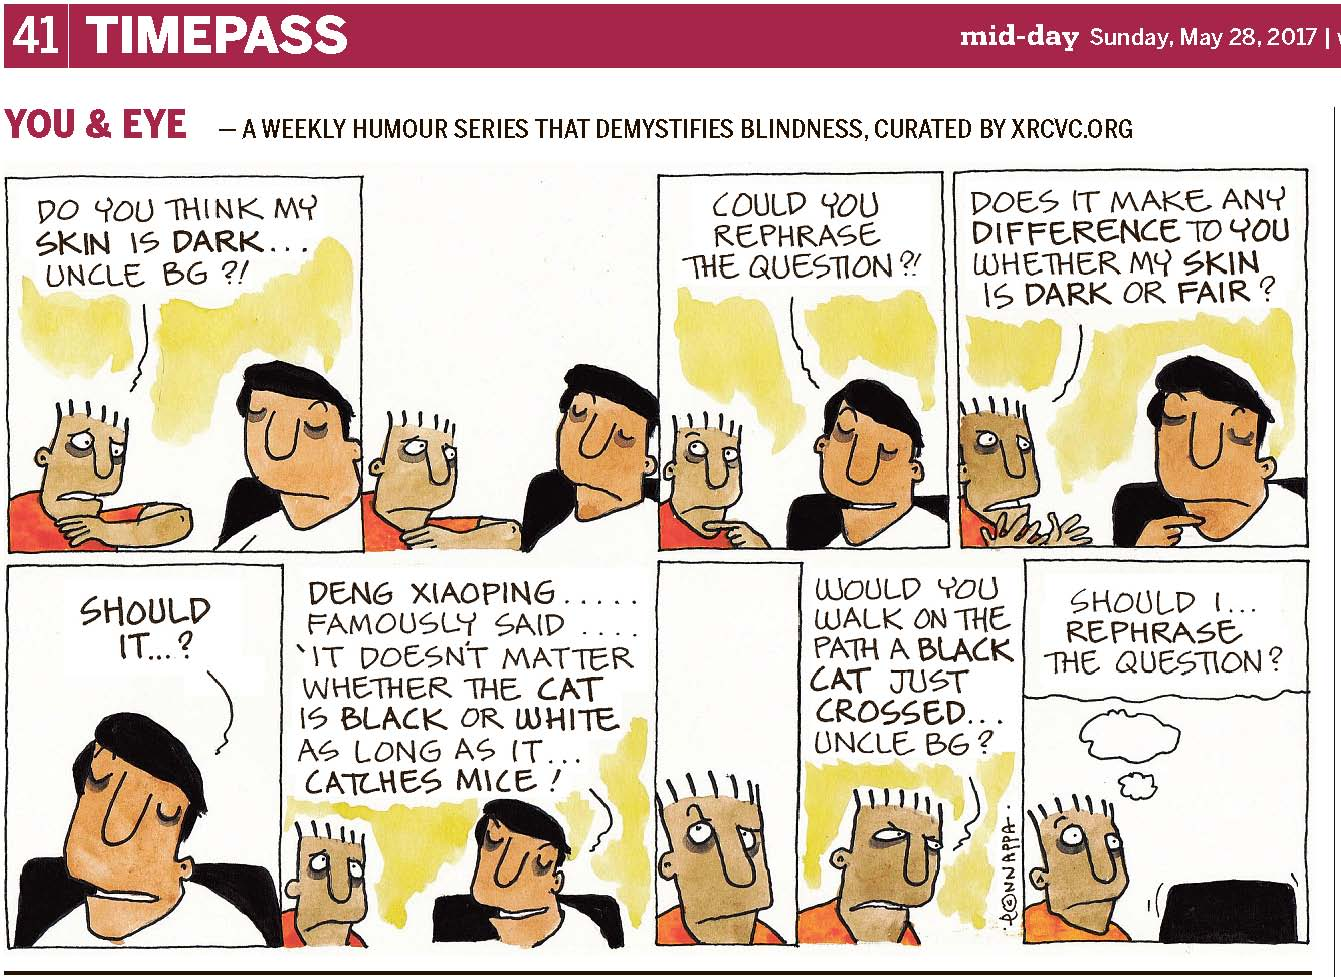 (top-left) 41 | TIMEPASS (top-right) mid-day Sunday, May 28, 2017 YOU & EYE – A WEEKLY HUMOUR SERIES THAT DEMYSTIFIES BLINDNESS, CURATED BY XRCVC.ORG Image description: A cartoon strip with 9 frames… Frame 1: (Pintu seems anxious as he looks closely at his left arm folded in front of his face. BG sits on a black chair.) Pintu: Do you think my skin is dark… Uncle BG?! Frame 2: 